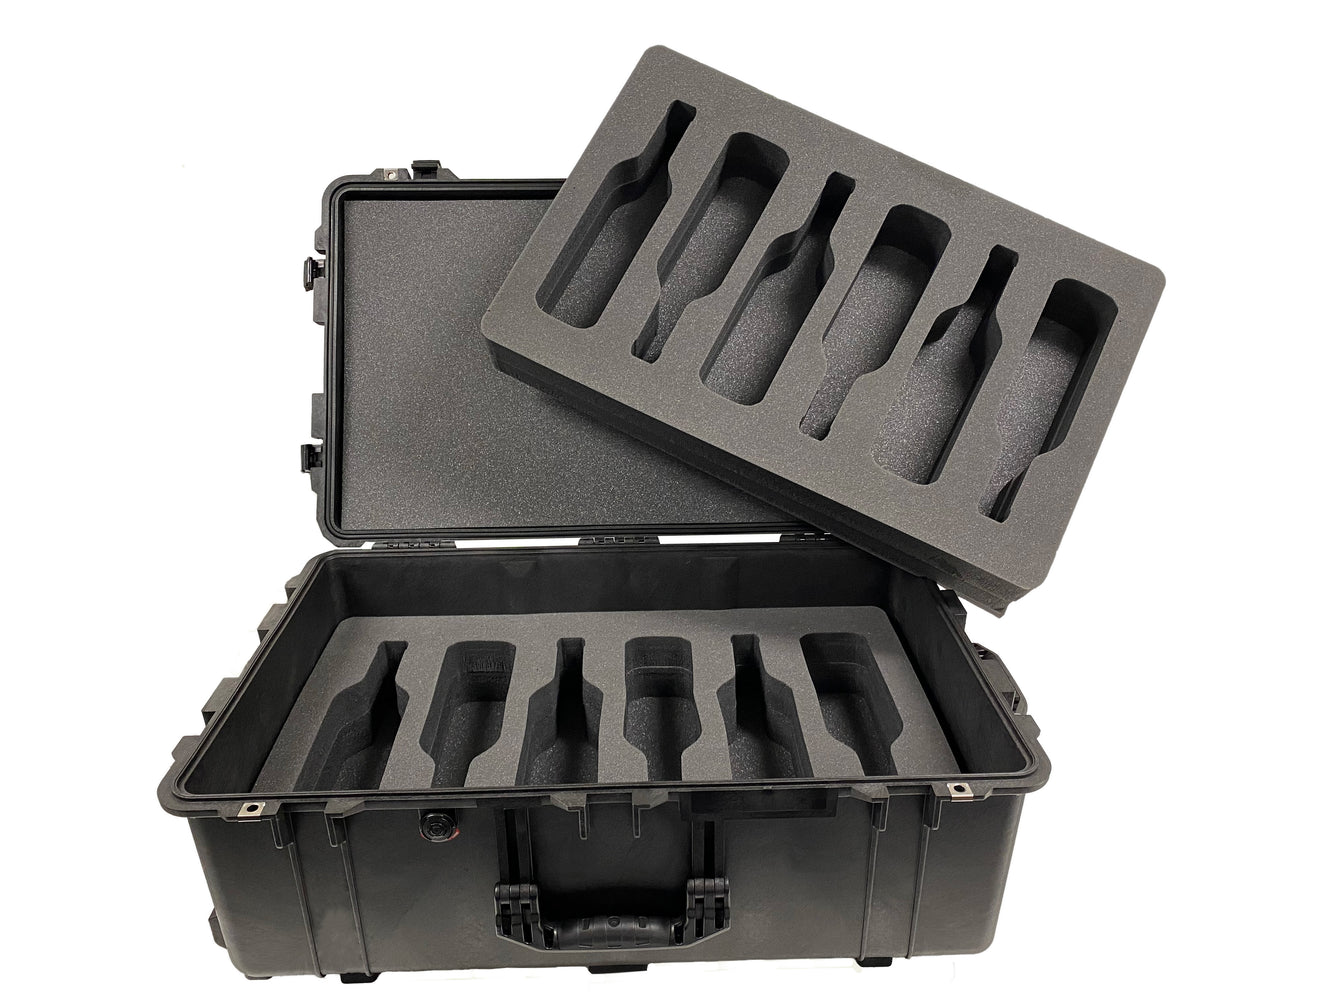 Pelican Air Case 1615 Foam Inserts Set for 12 bottles (FOAM ONLY)